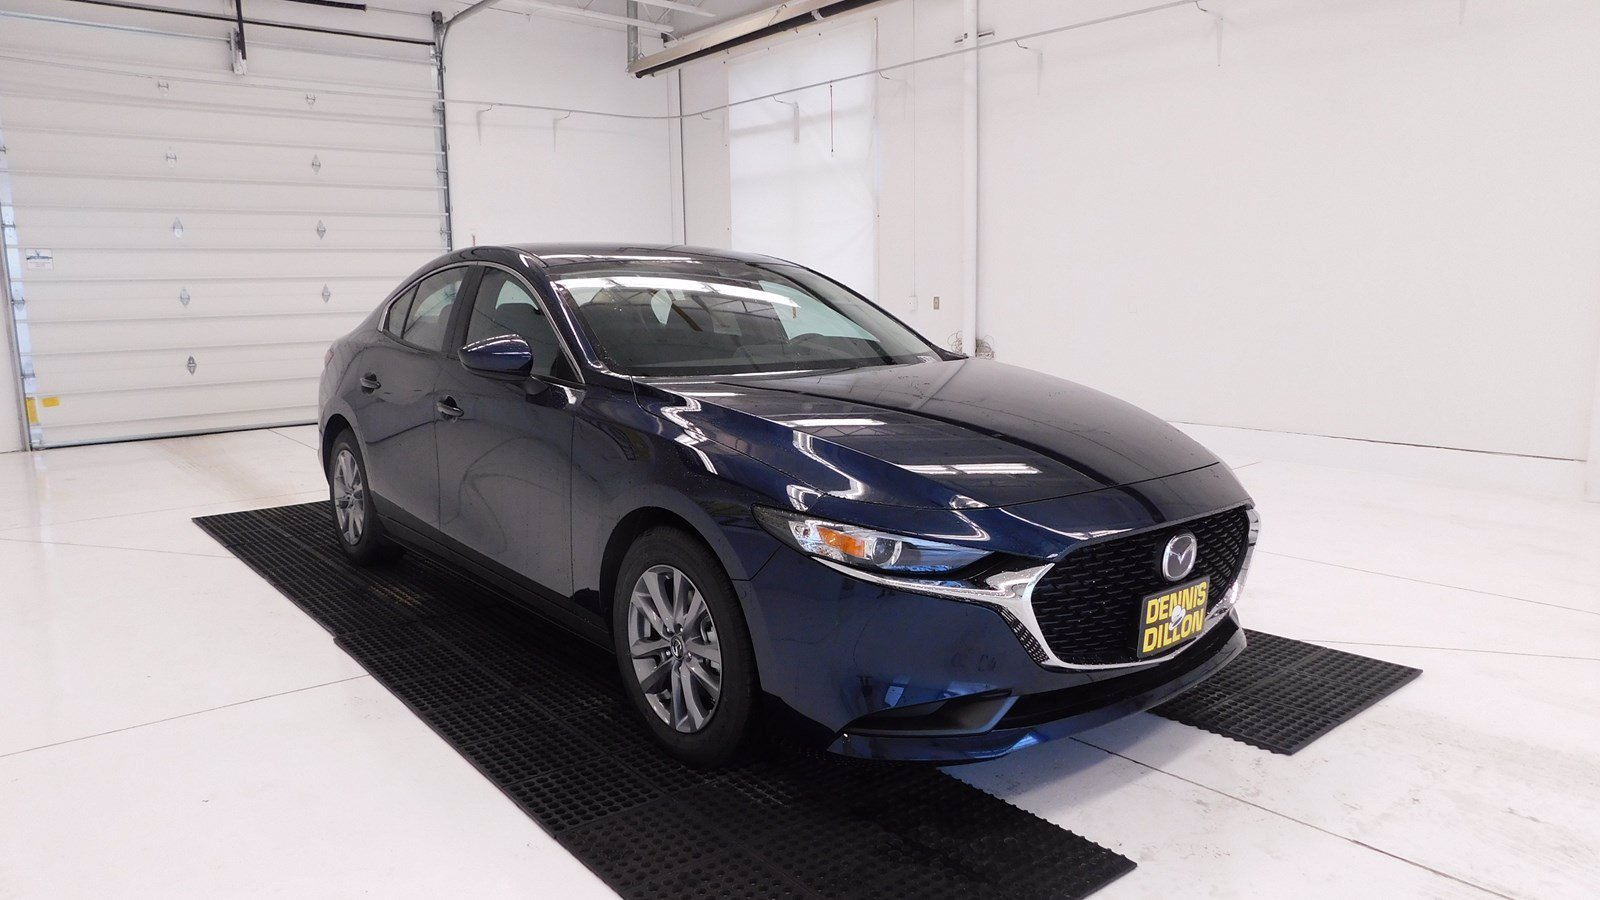 Dennis Dillon Mazda Boise >> New 2020 Mazda3 Sedan Fwd 4dr Car